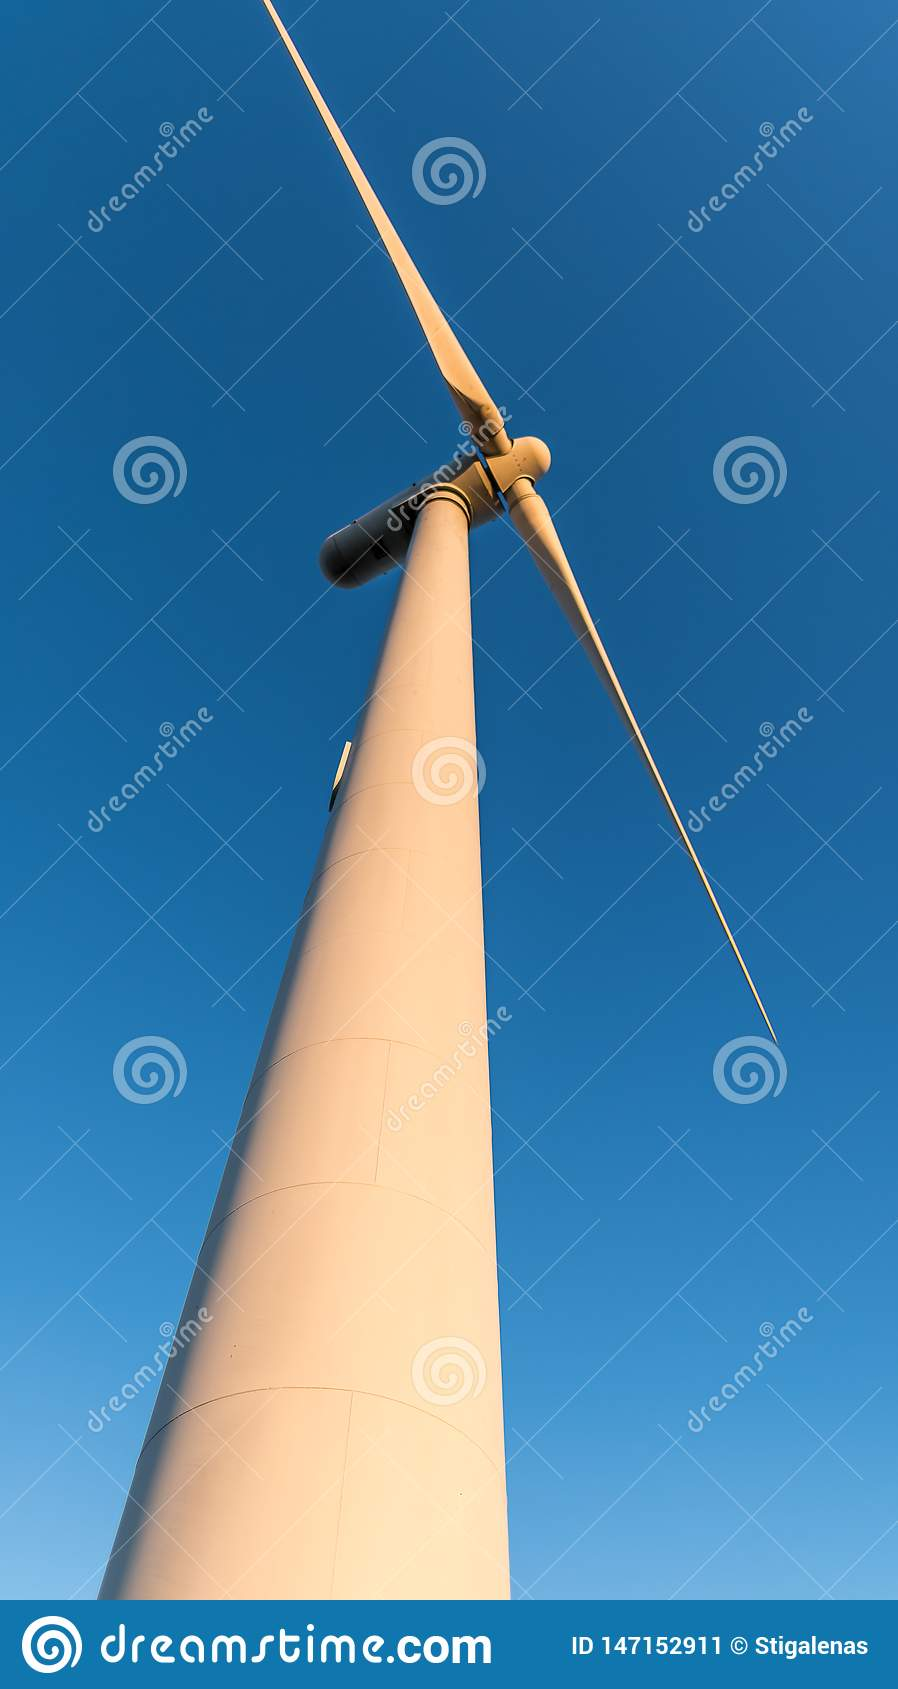 The rotating blades of a windmill against blue sky